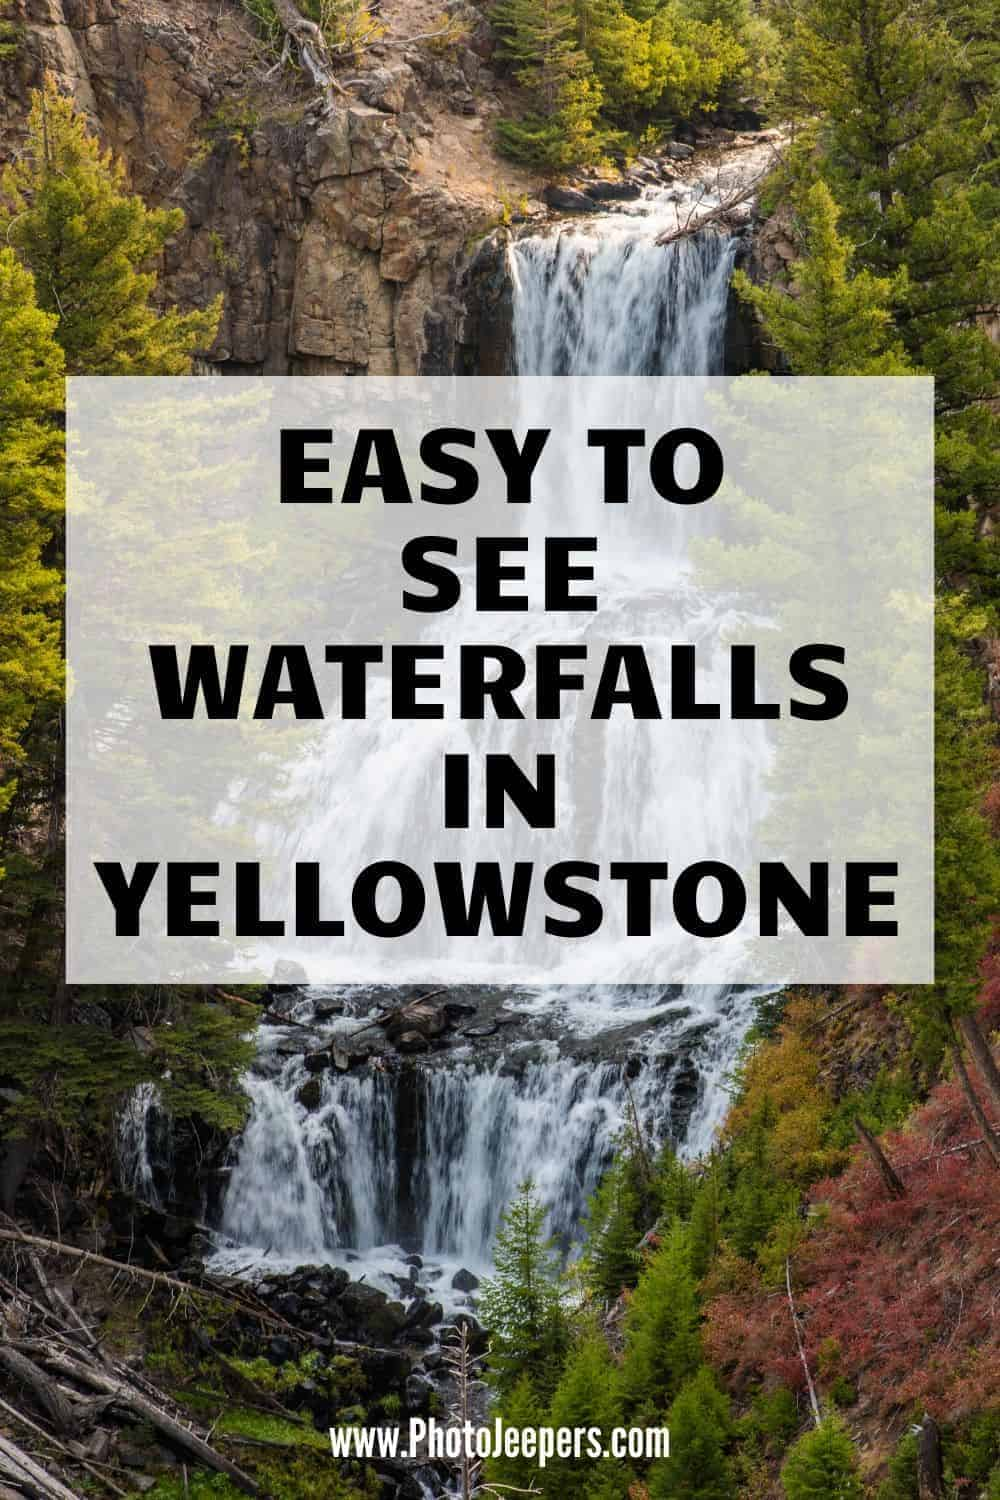 Do you love to see waterfalls!? Do you love visiting Yellowstone? You can do both! Use this guide to find all the easy to see waterfalls in Yellowstone National Park. #nationalparks #yellowstone #waterfalls #photojeepers